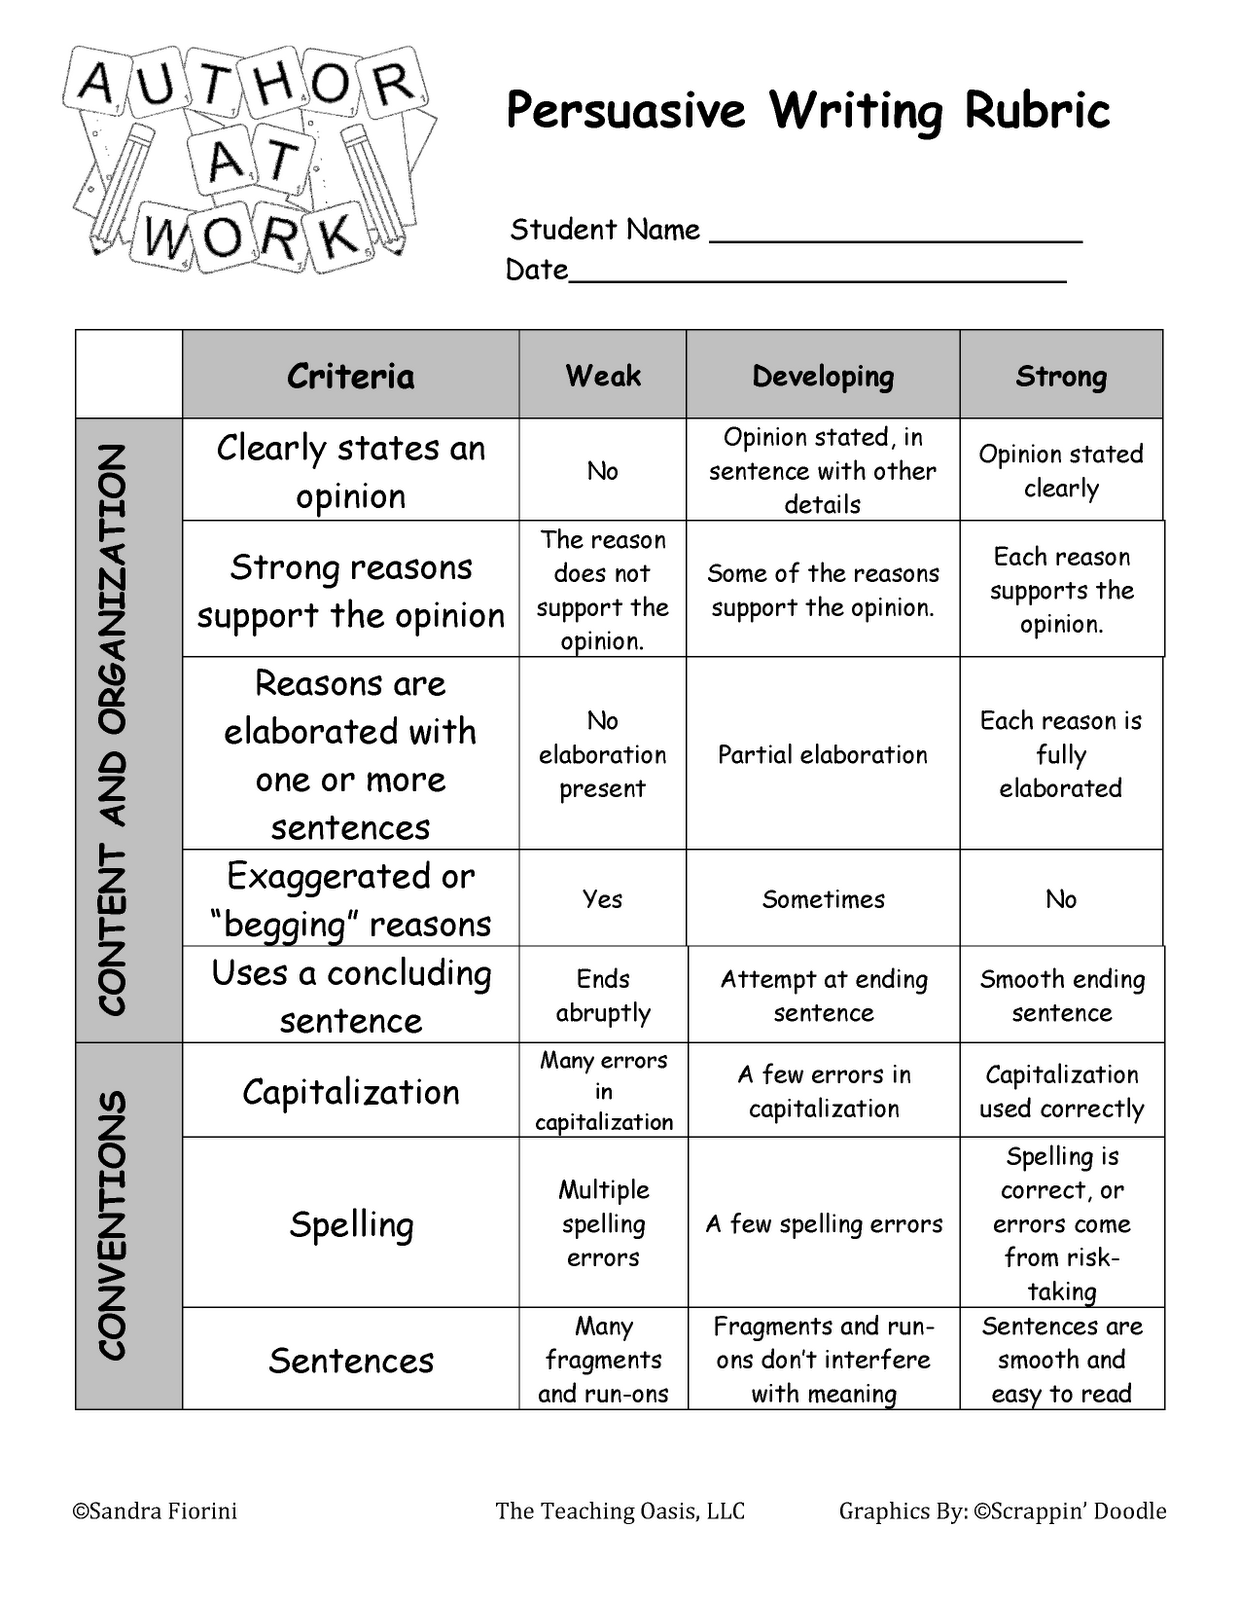 persuasive writing activities for middle school Persuasive speaking debate games and activities guide seda 2 school/university/affiliation: home street middle school, bishop, ca.